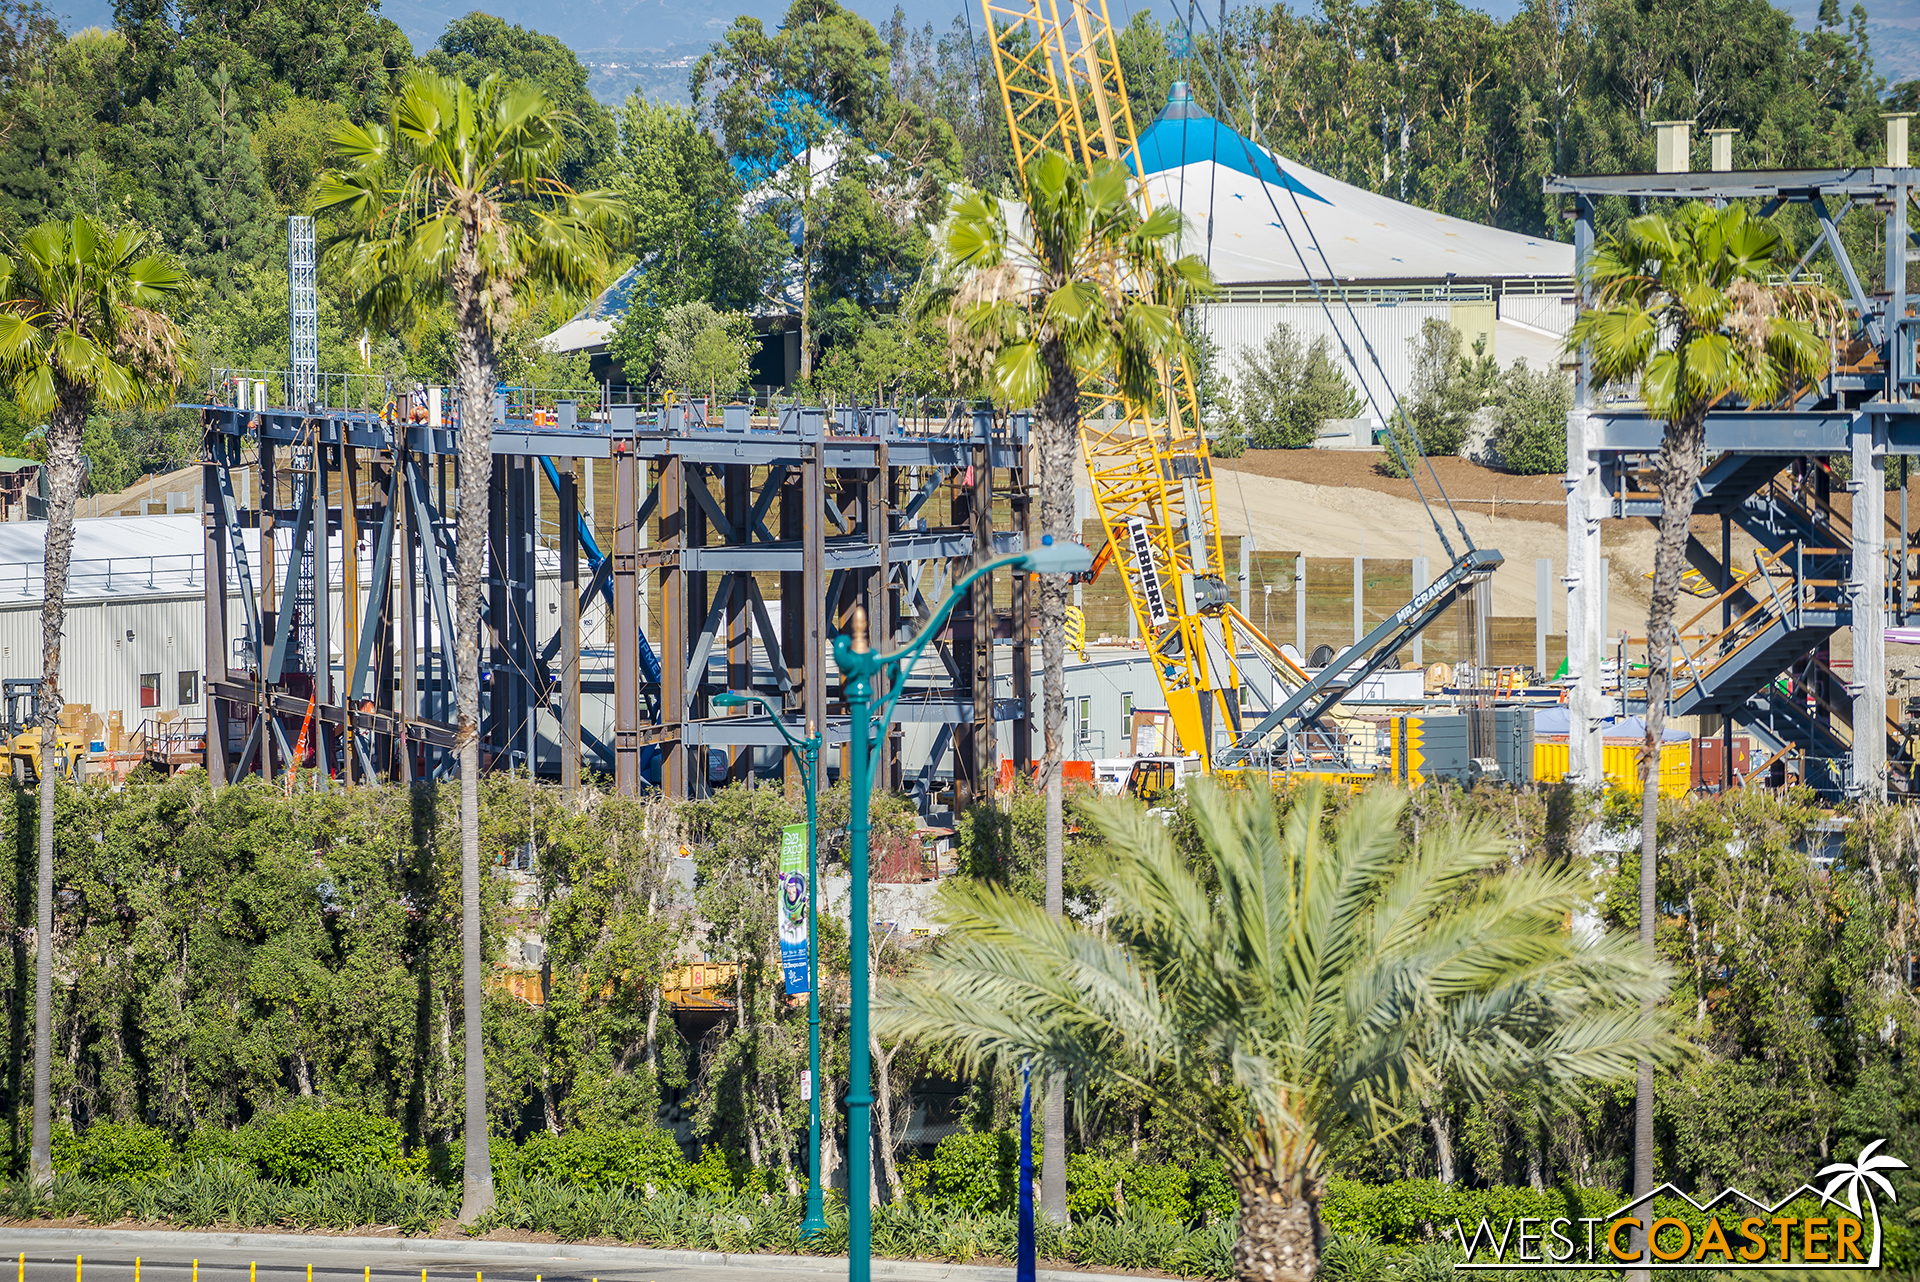 The framing for the Millennium Eagle ride that we saw last week has also expanded.